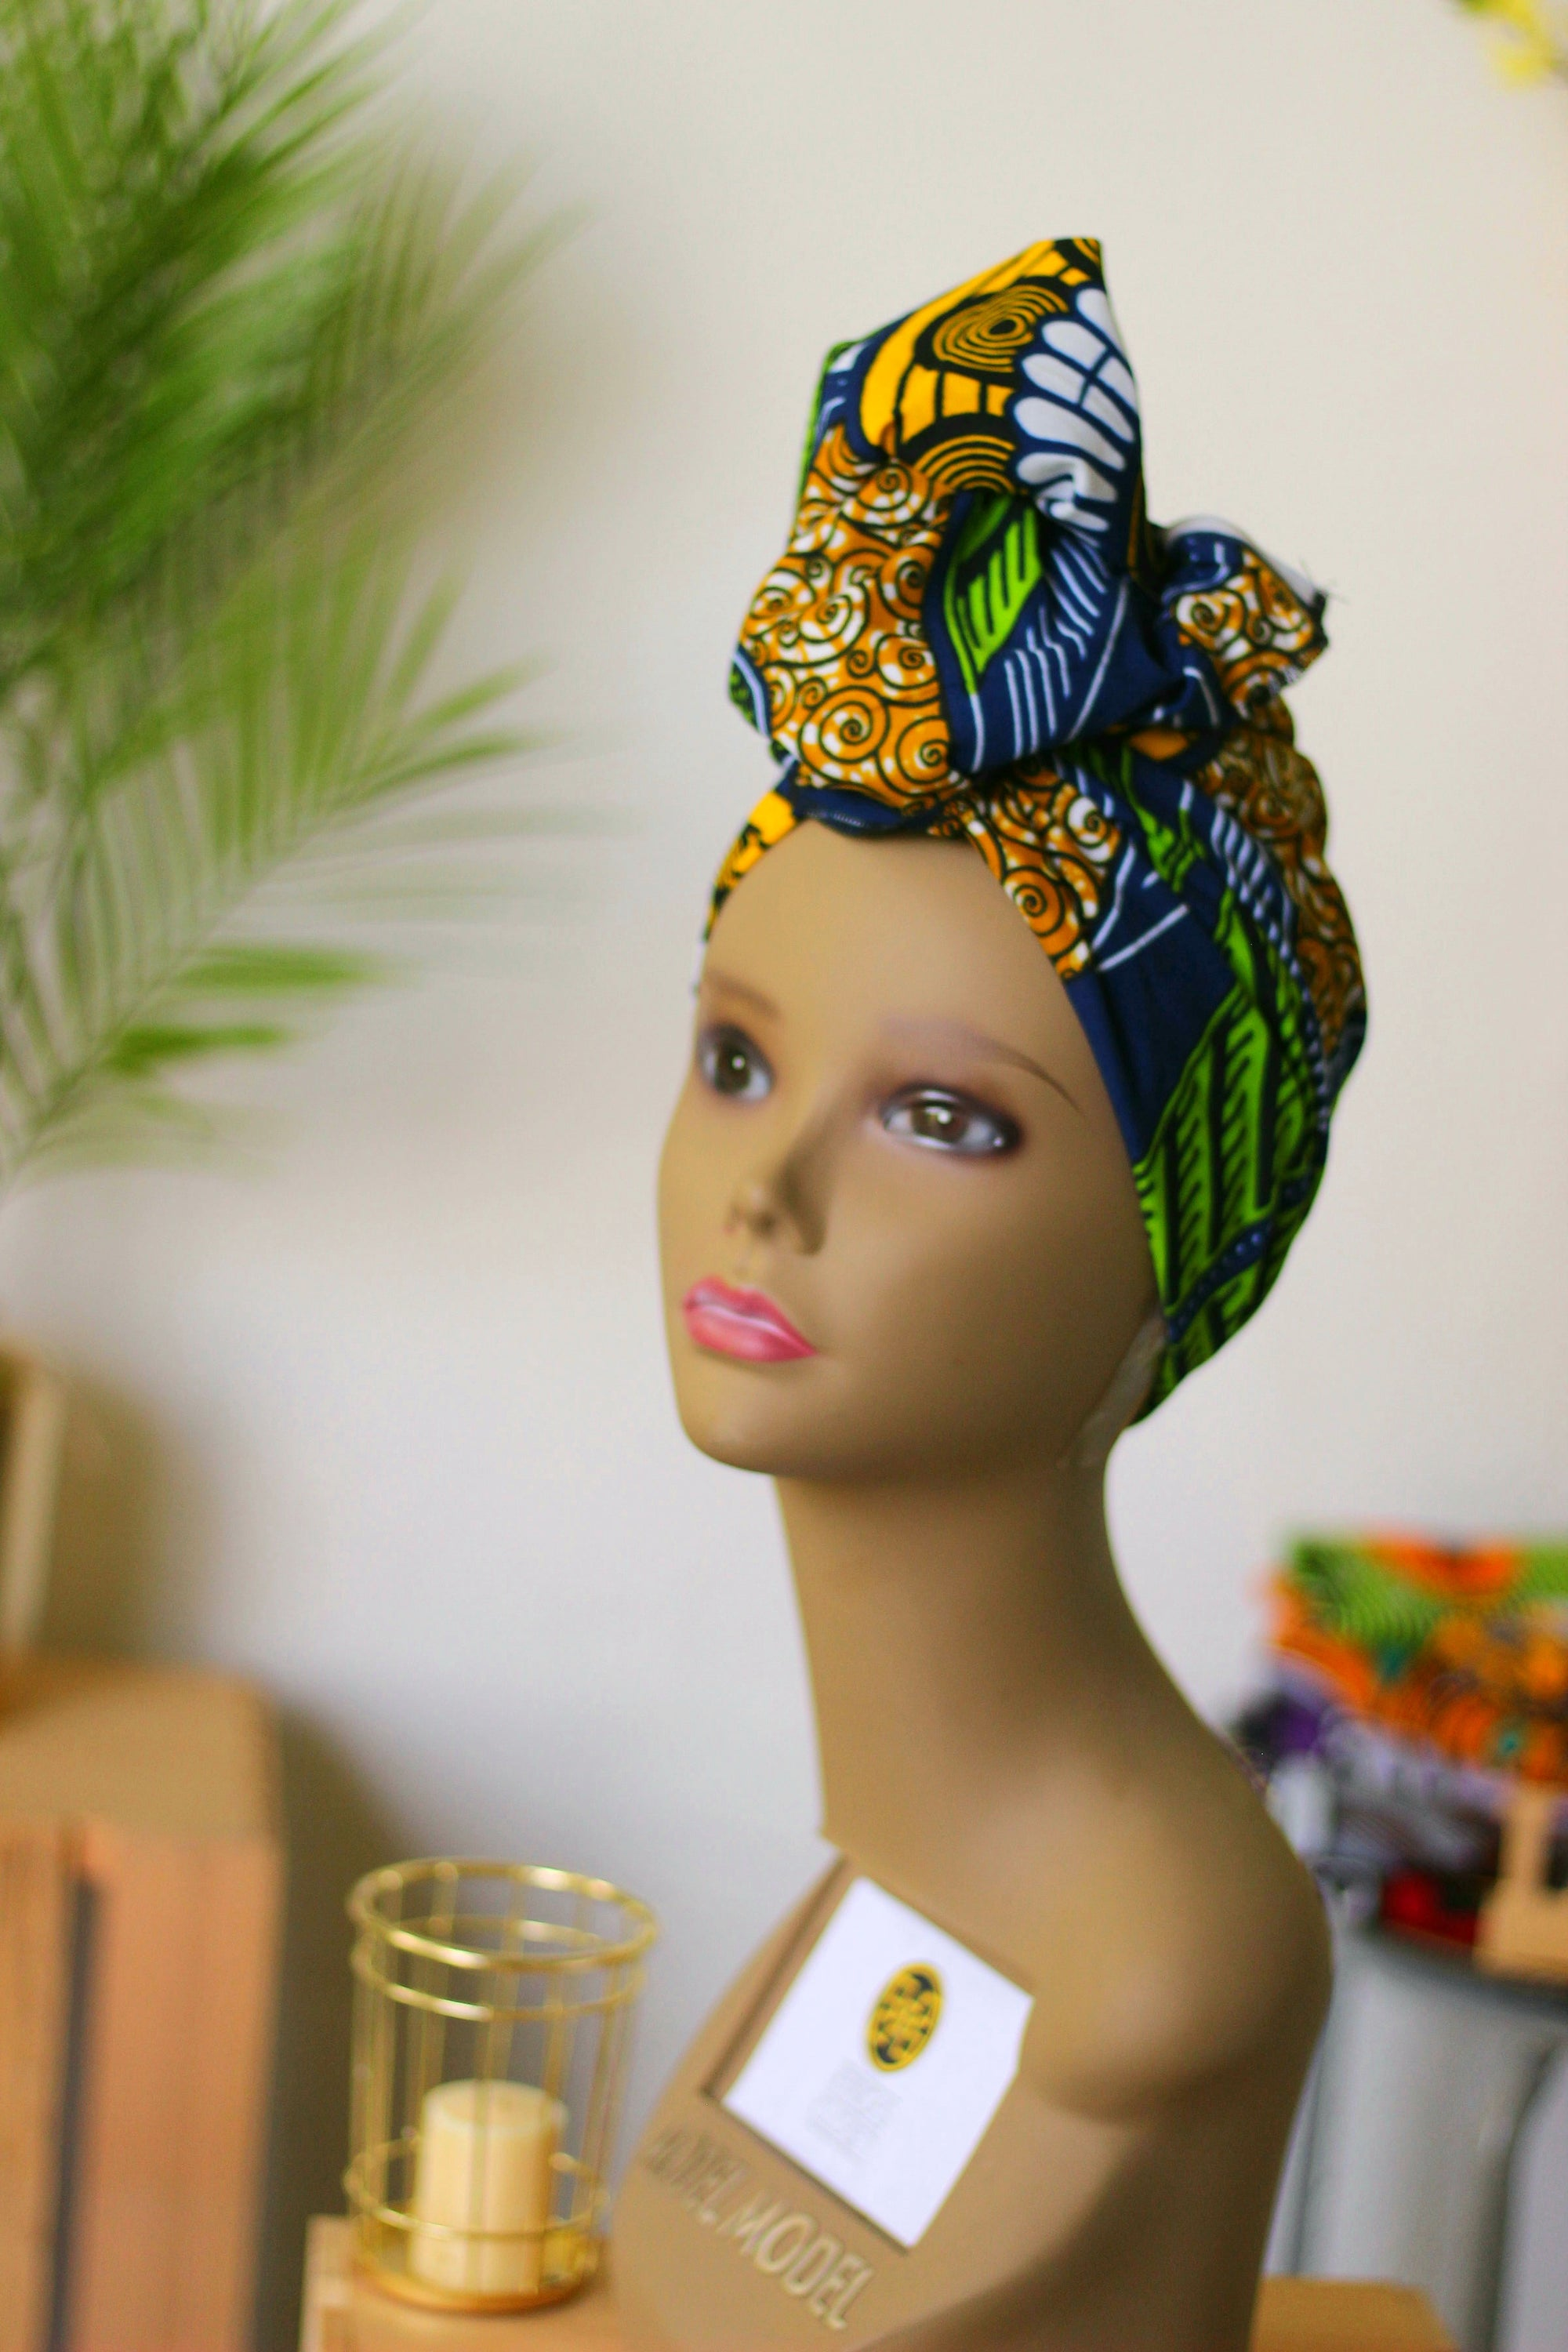 African Print Headwrap (Mini) - Blue/Yellow/Green Floral Print